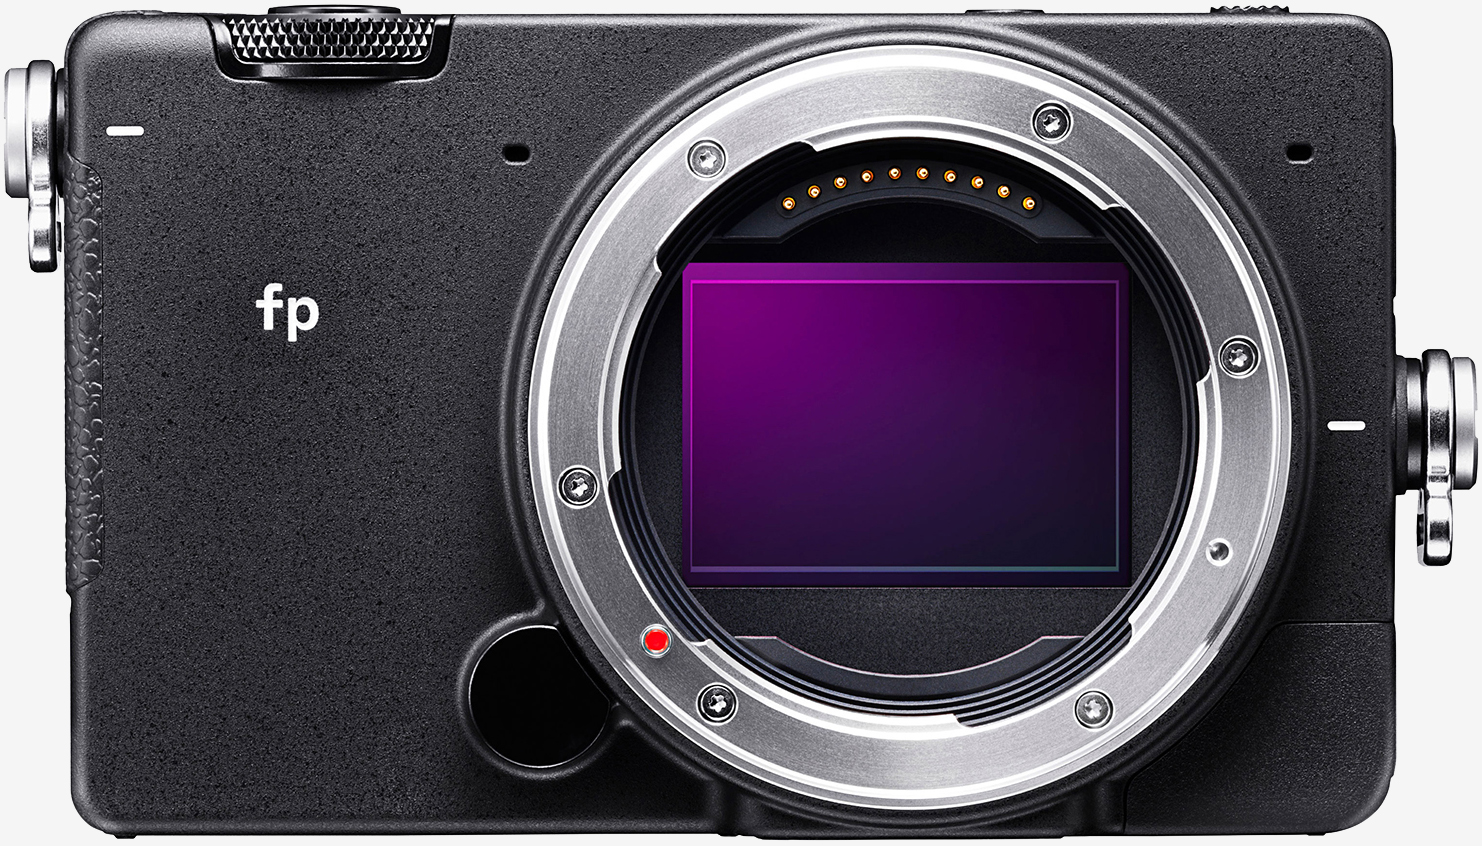 Sigma Just Dropped the World's Smallest-and Lightest-Full-Frame Camera